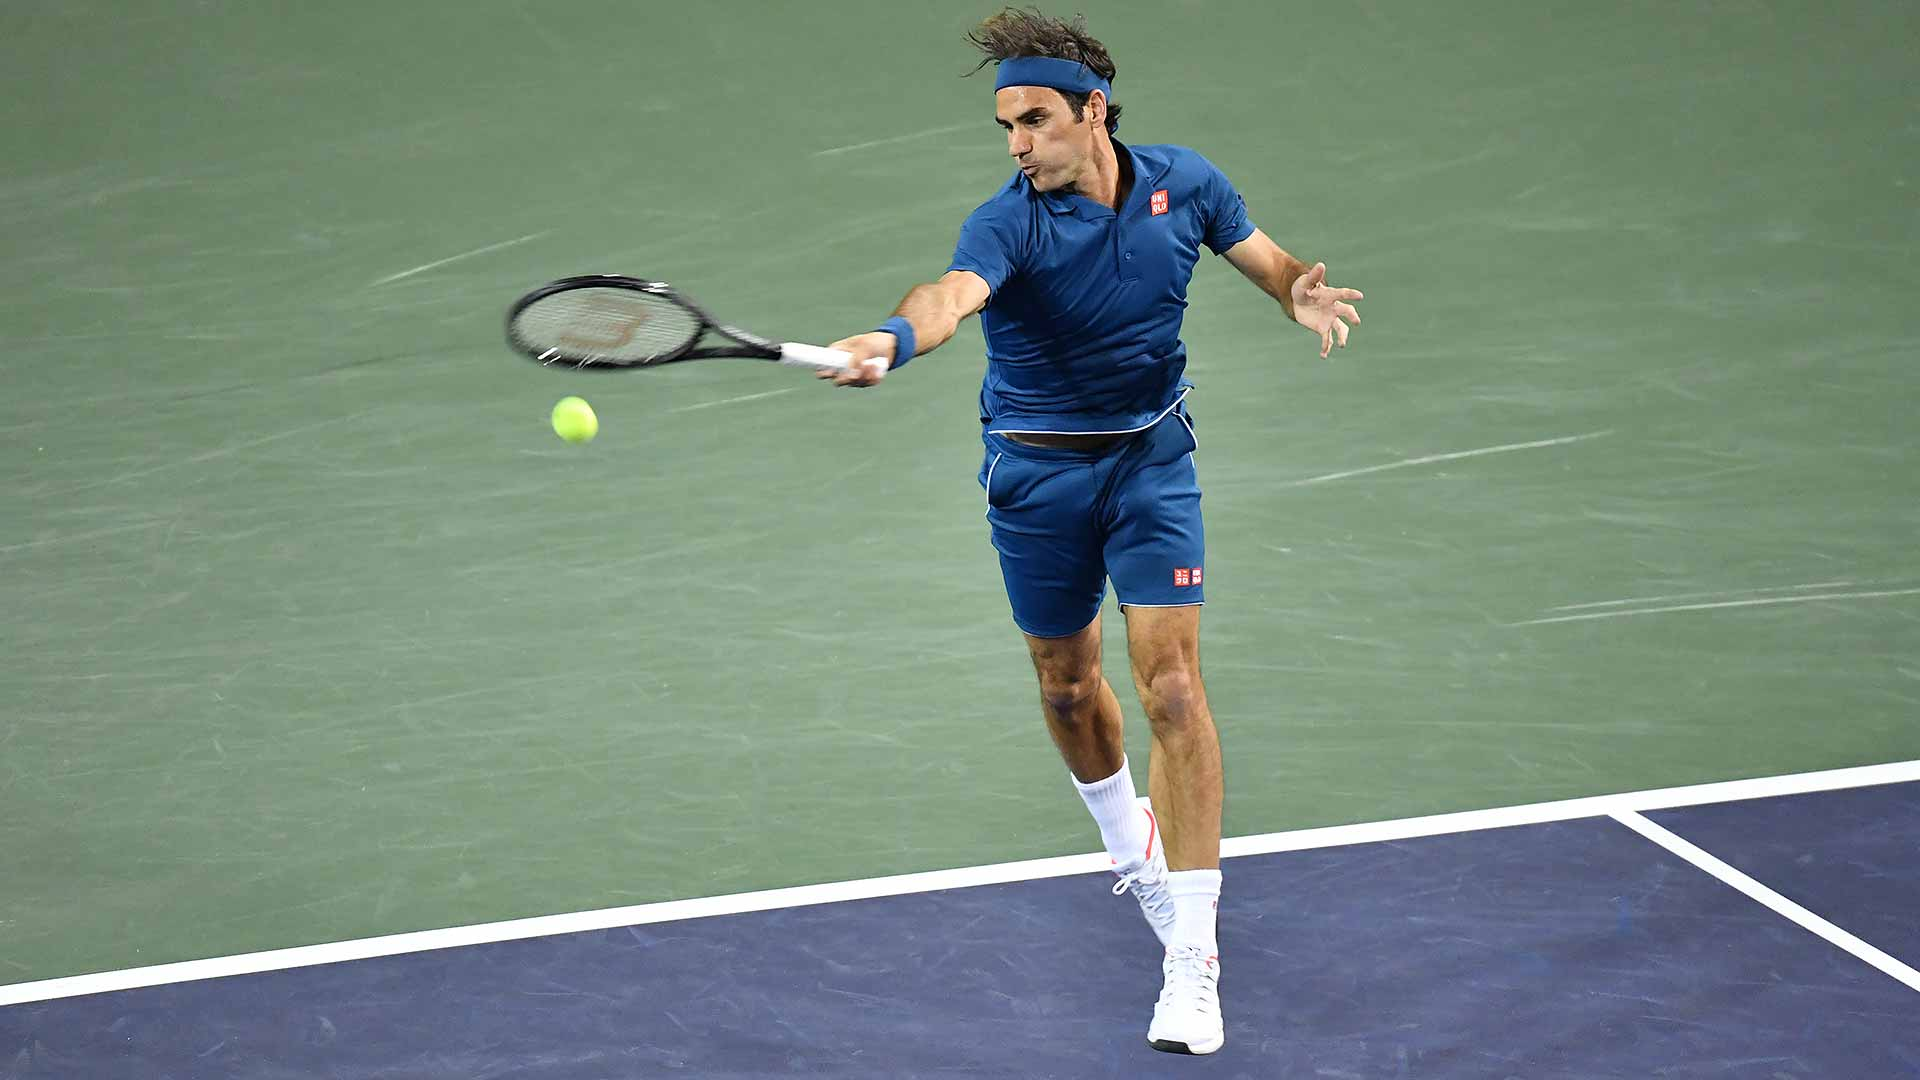 Roger Federer plays Stan Wawrinka at the BNP Paribas Open in Indian Wells